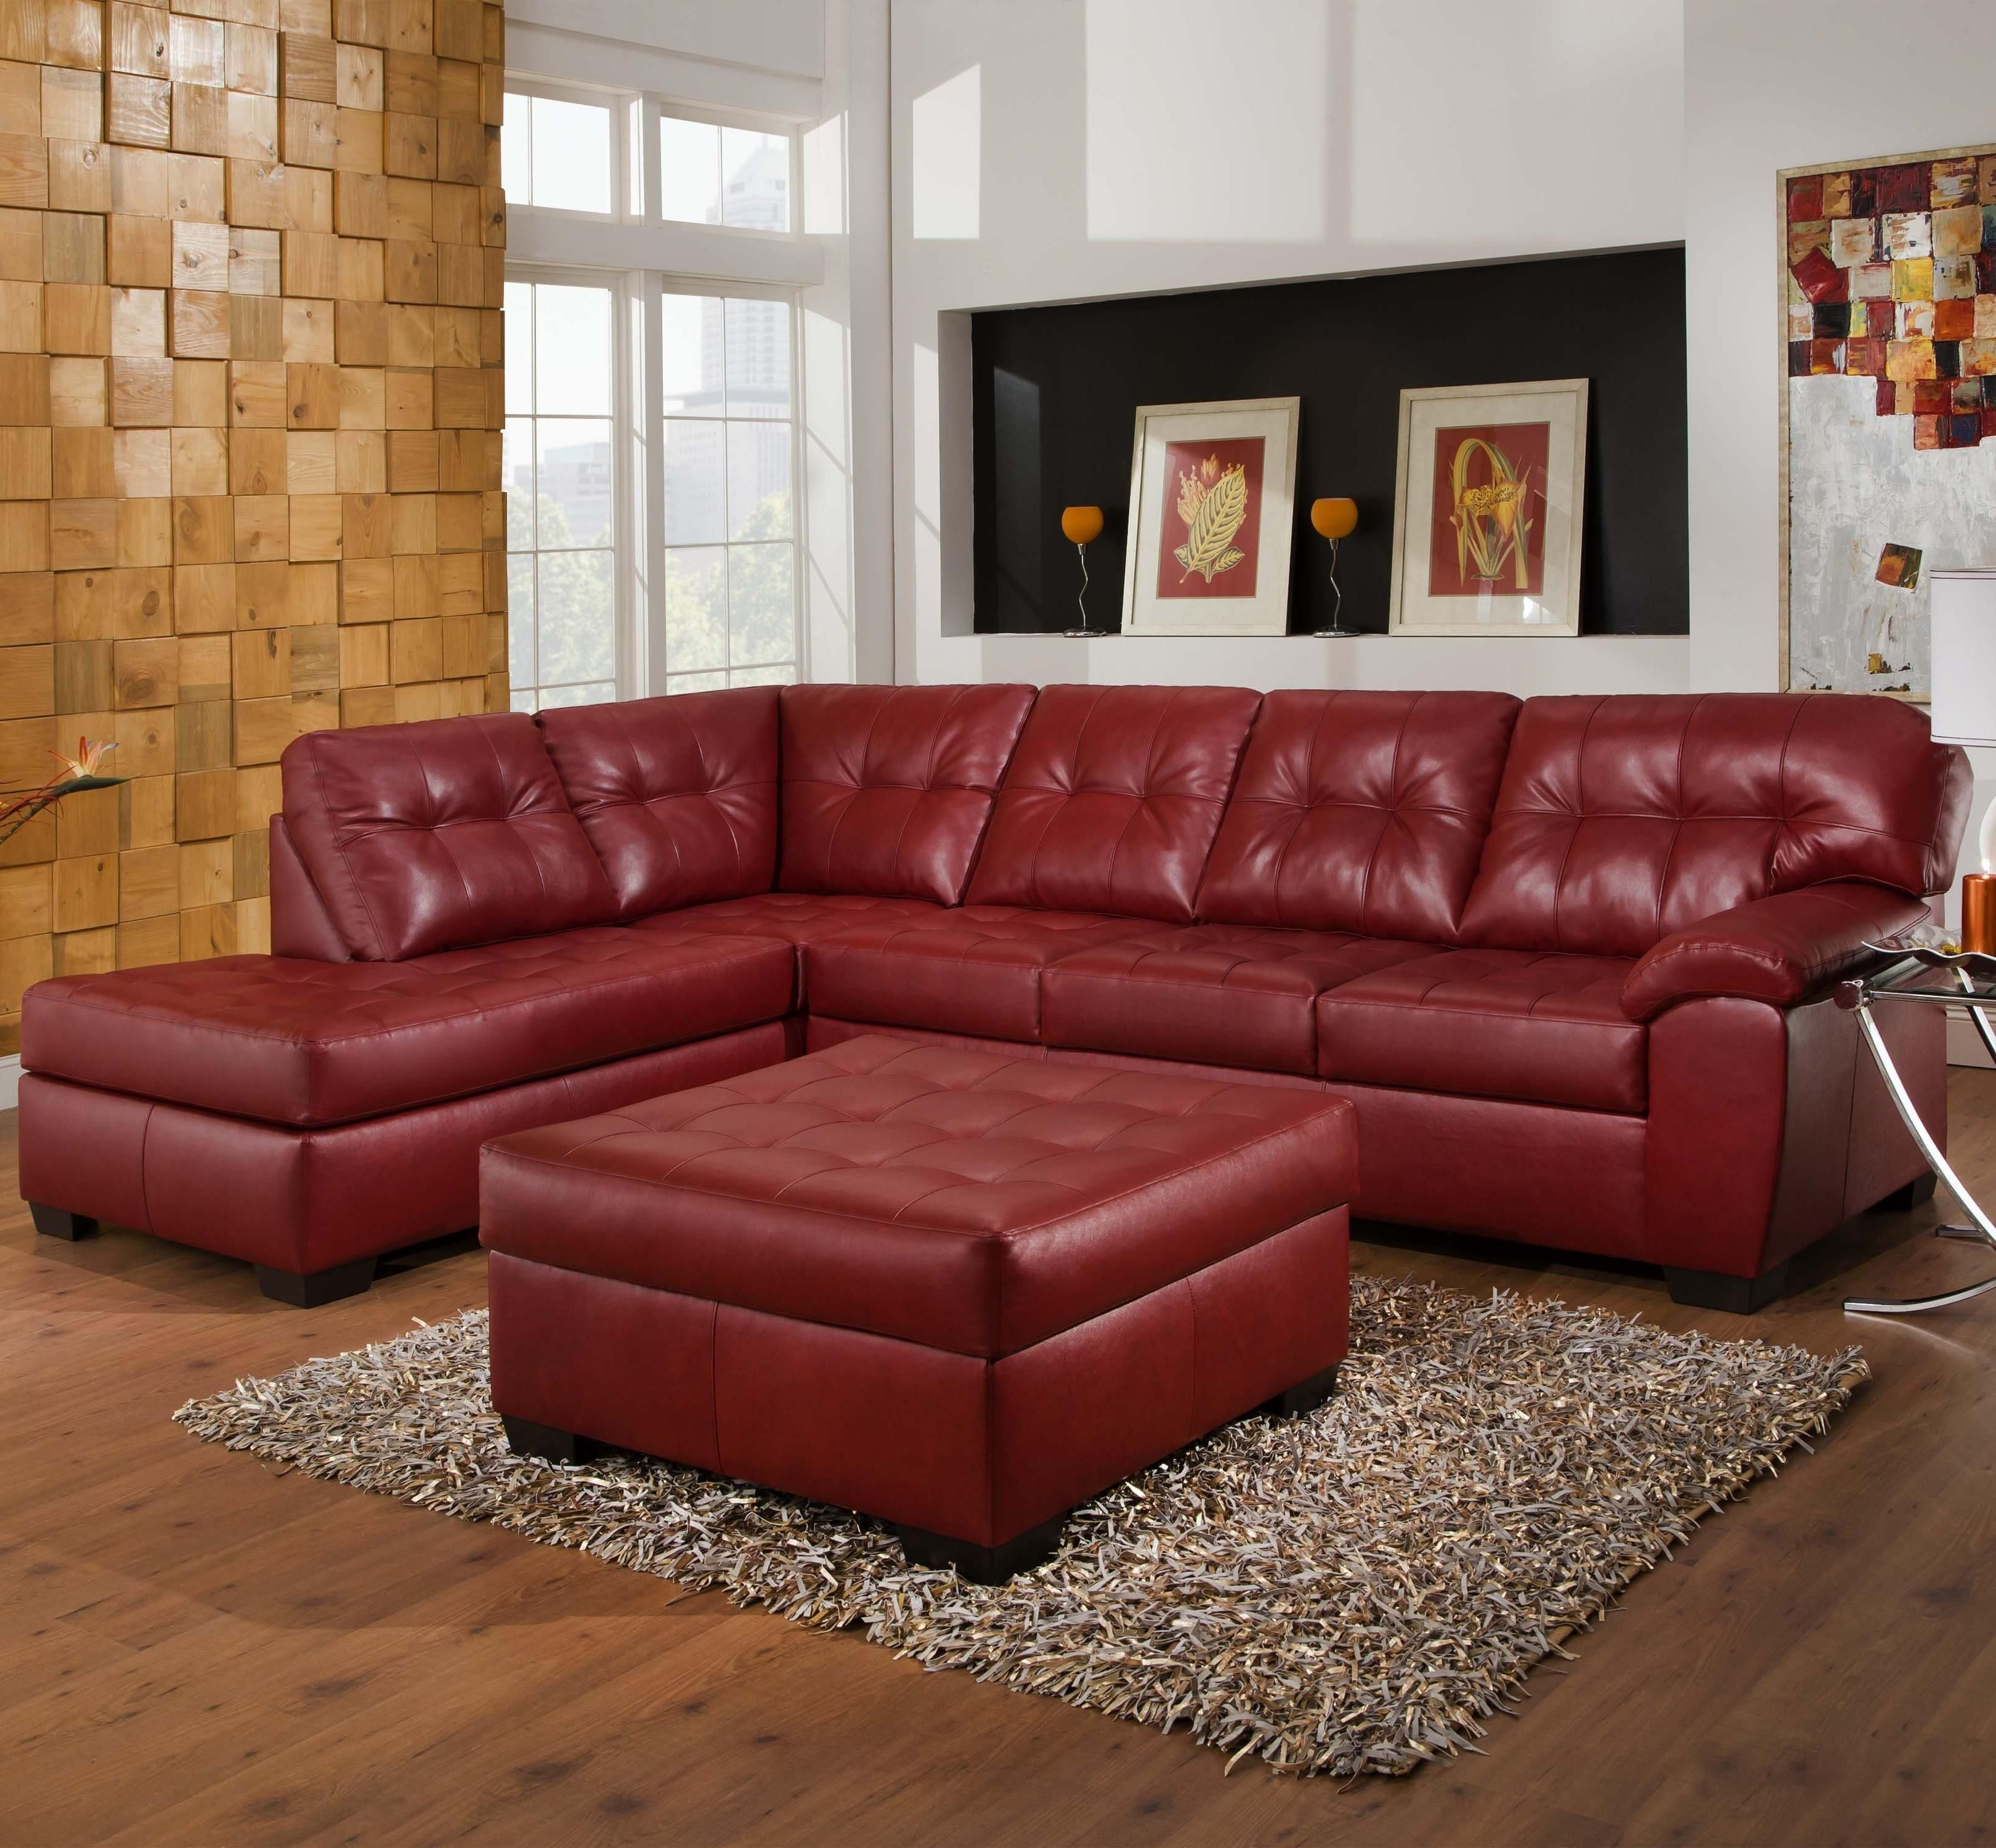 Most Current 9569 2 Piece Sectional With Tufted Seats & Backsimmons Inside Memphis Tn Sectional Sofas (View 16 of 20)